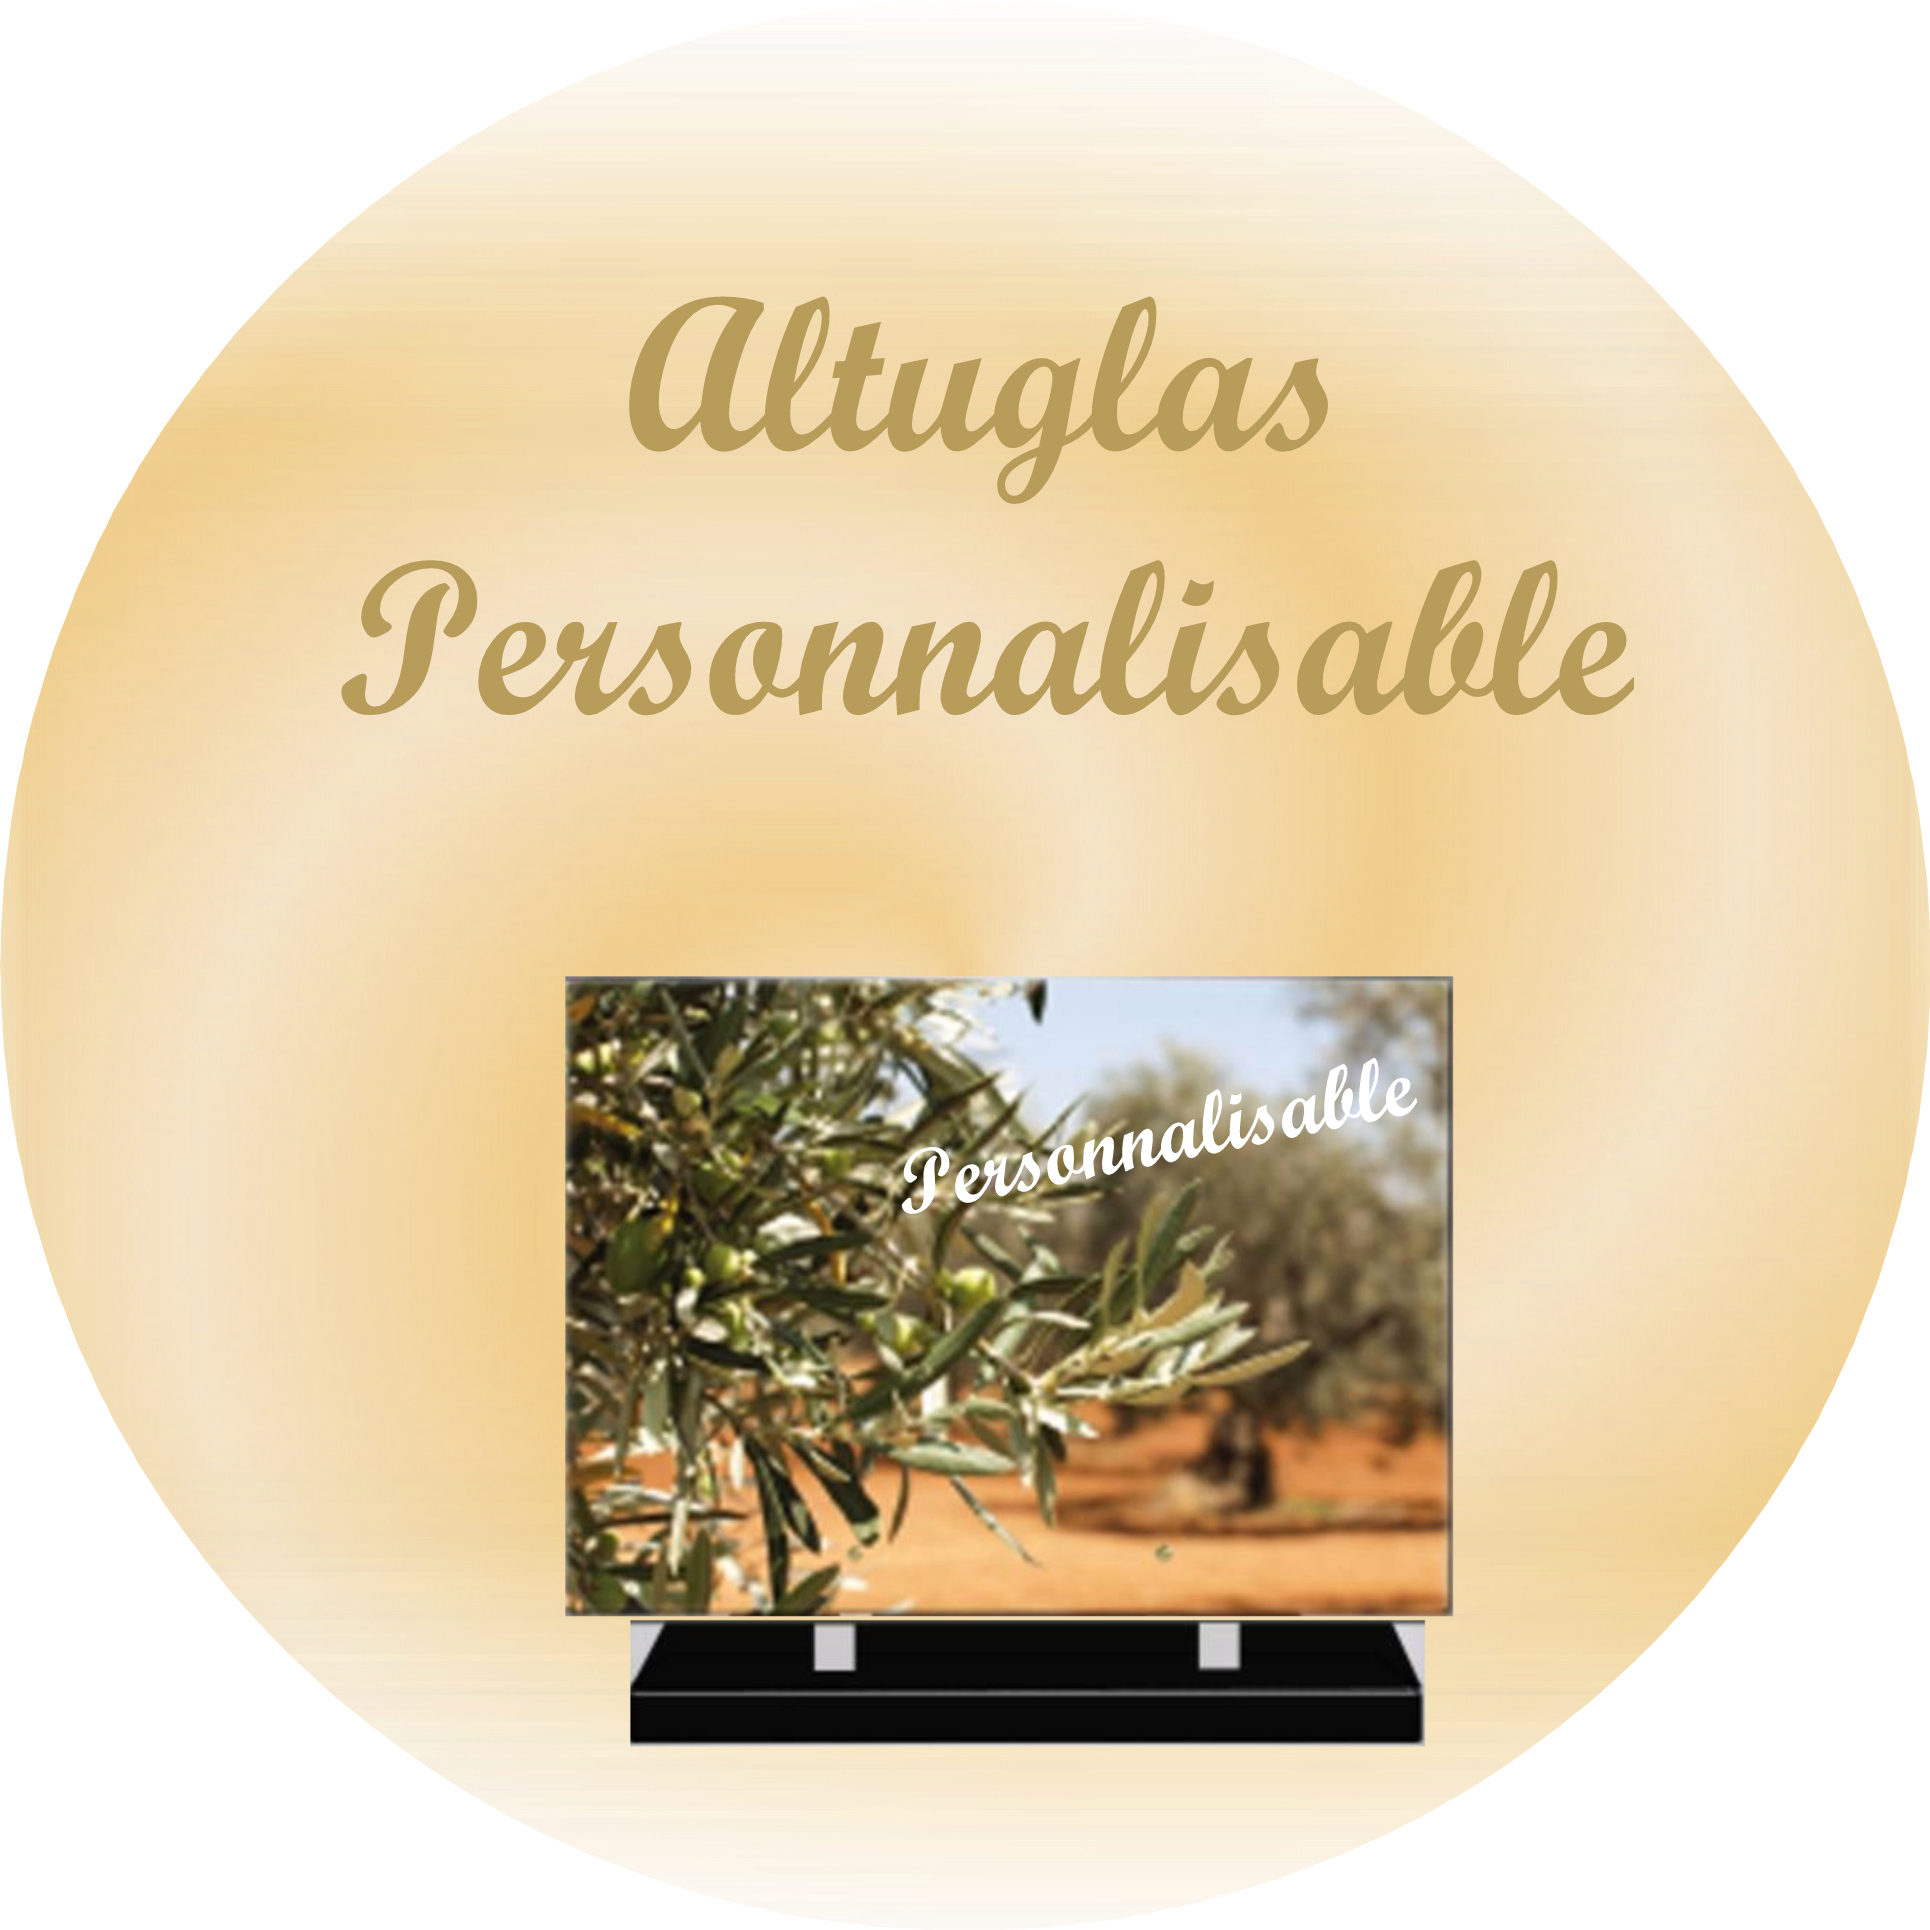 PLAQUES FUNERAIRES MODERNES PERSONNALISABLES RECTANGLE TAILLEBOIS